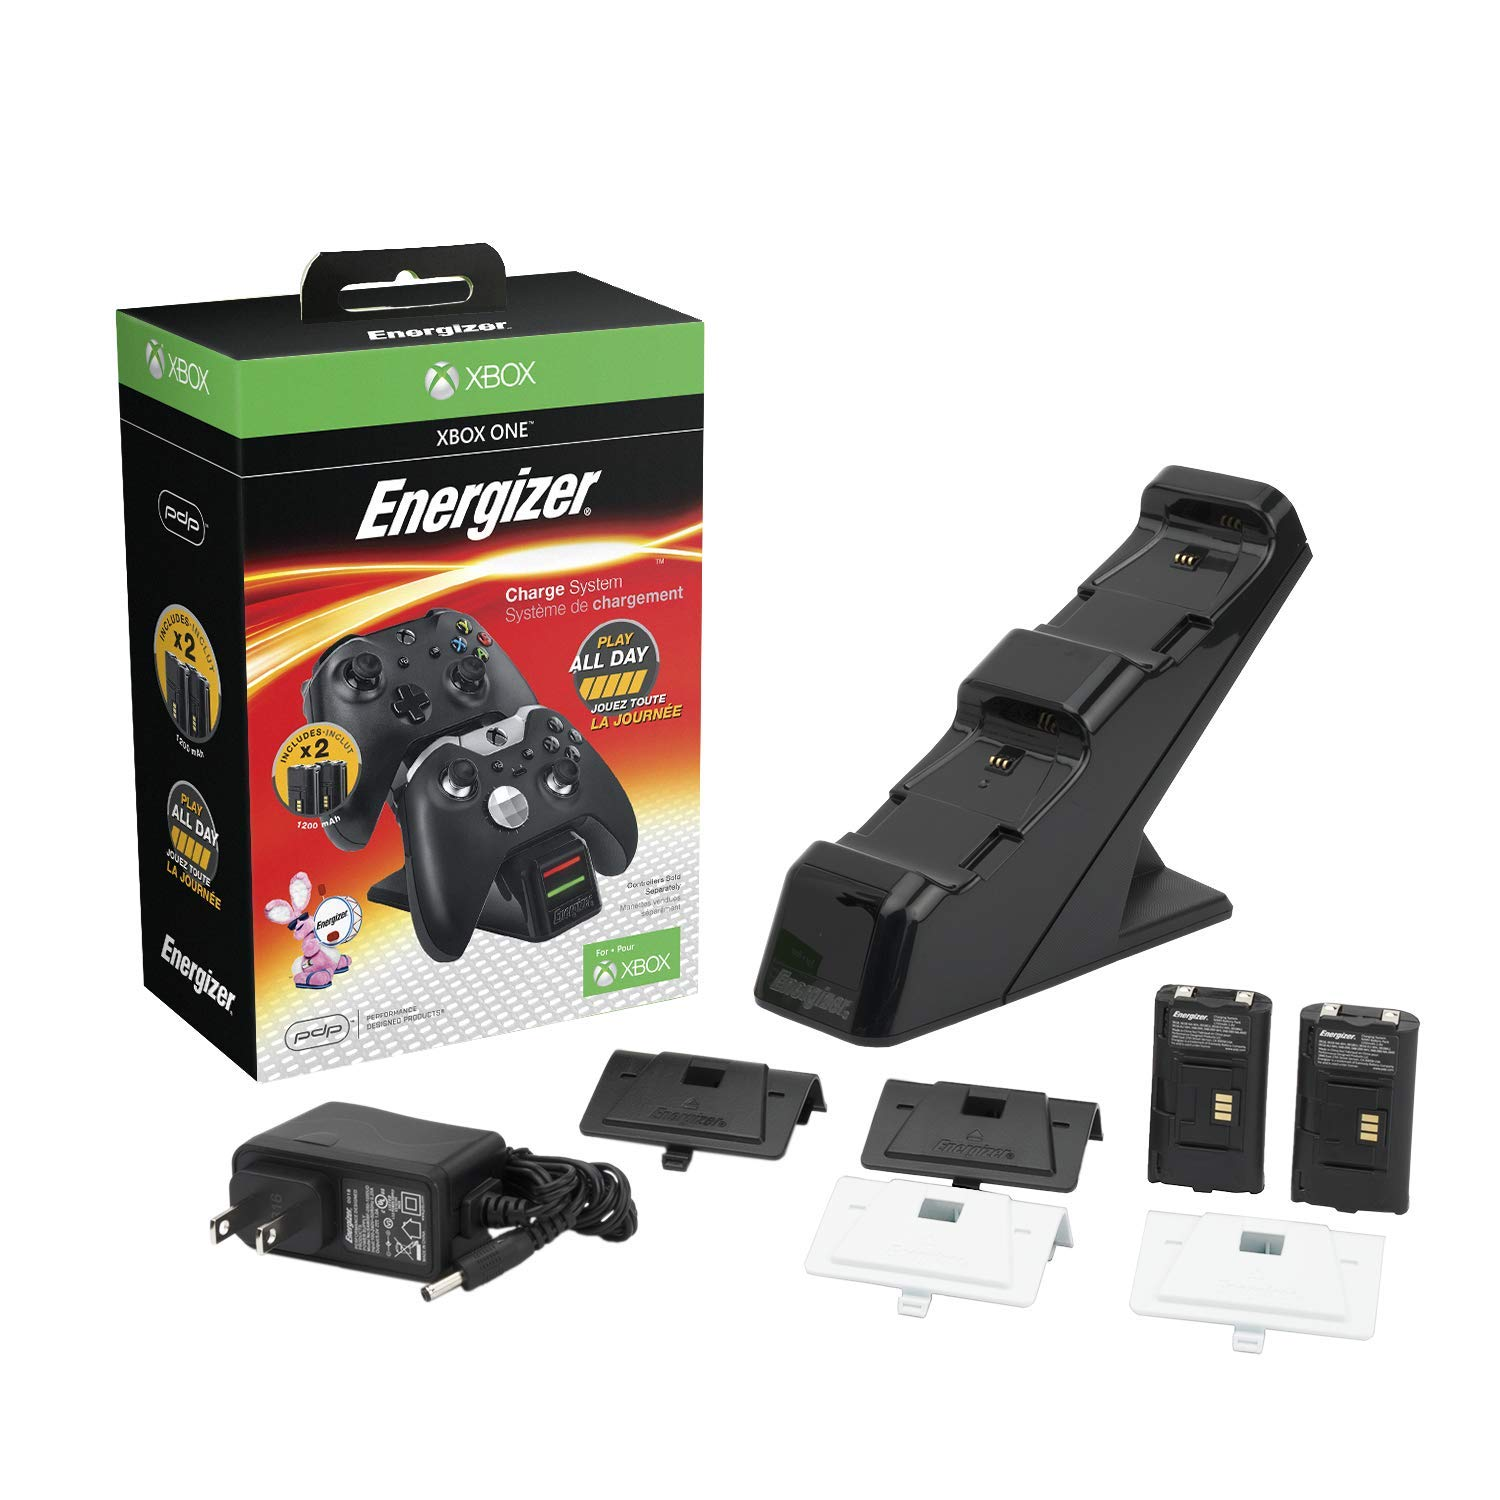 PDP Energizer Xbox One Controller Charger with Rechargeable Battery Pack for Two Wireless Controllers Charging Station Black (Package may Vary) - Standard (Black) Edition product image